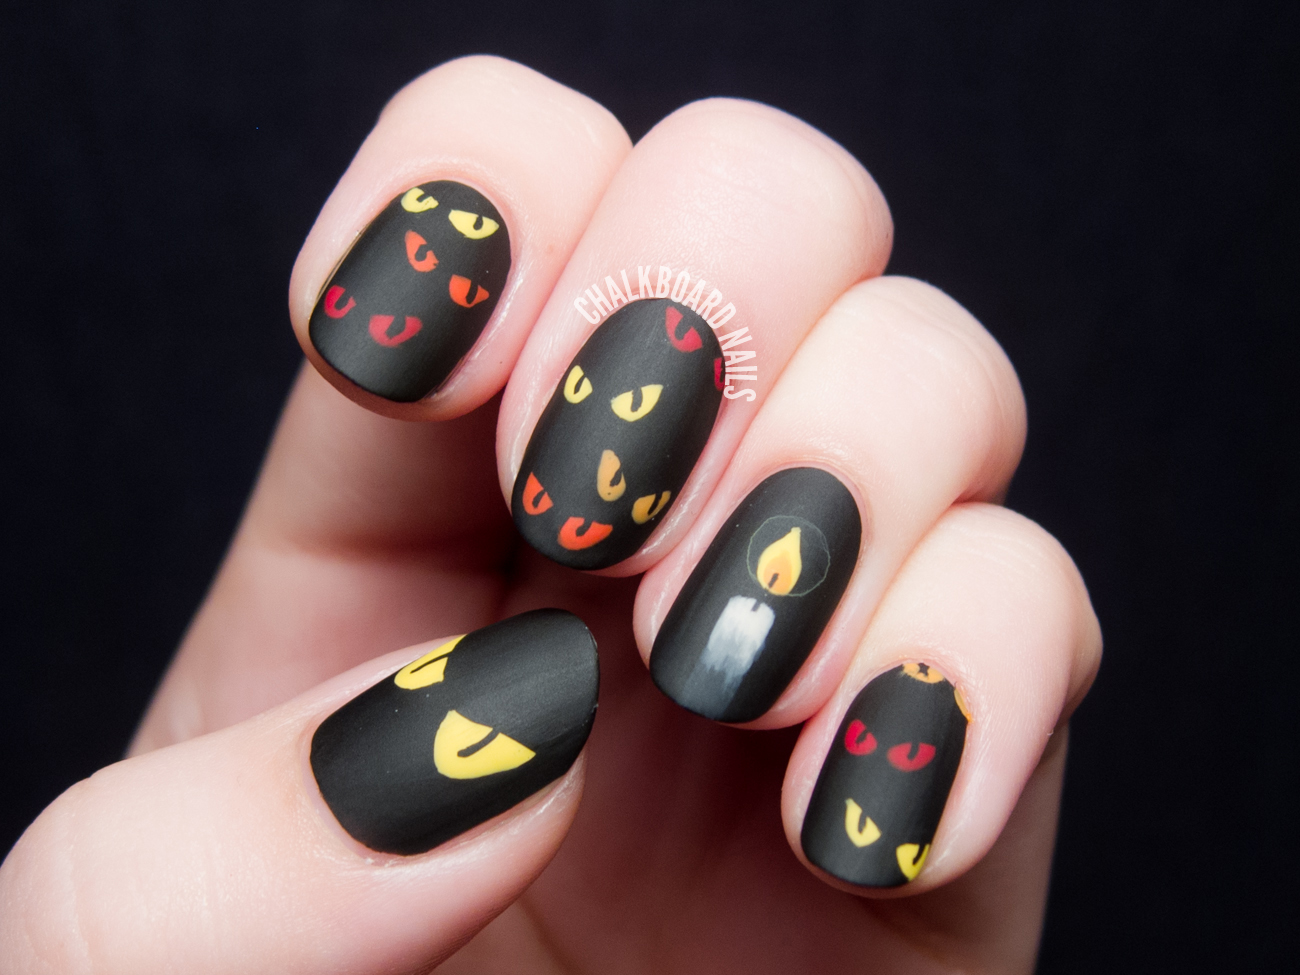 Spooky eyes nail art by @chalkboardnails - Are You Afraid Of The Dark? - Spooky Eyes Nail Art Chalkboard